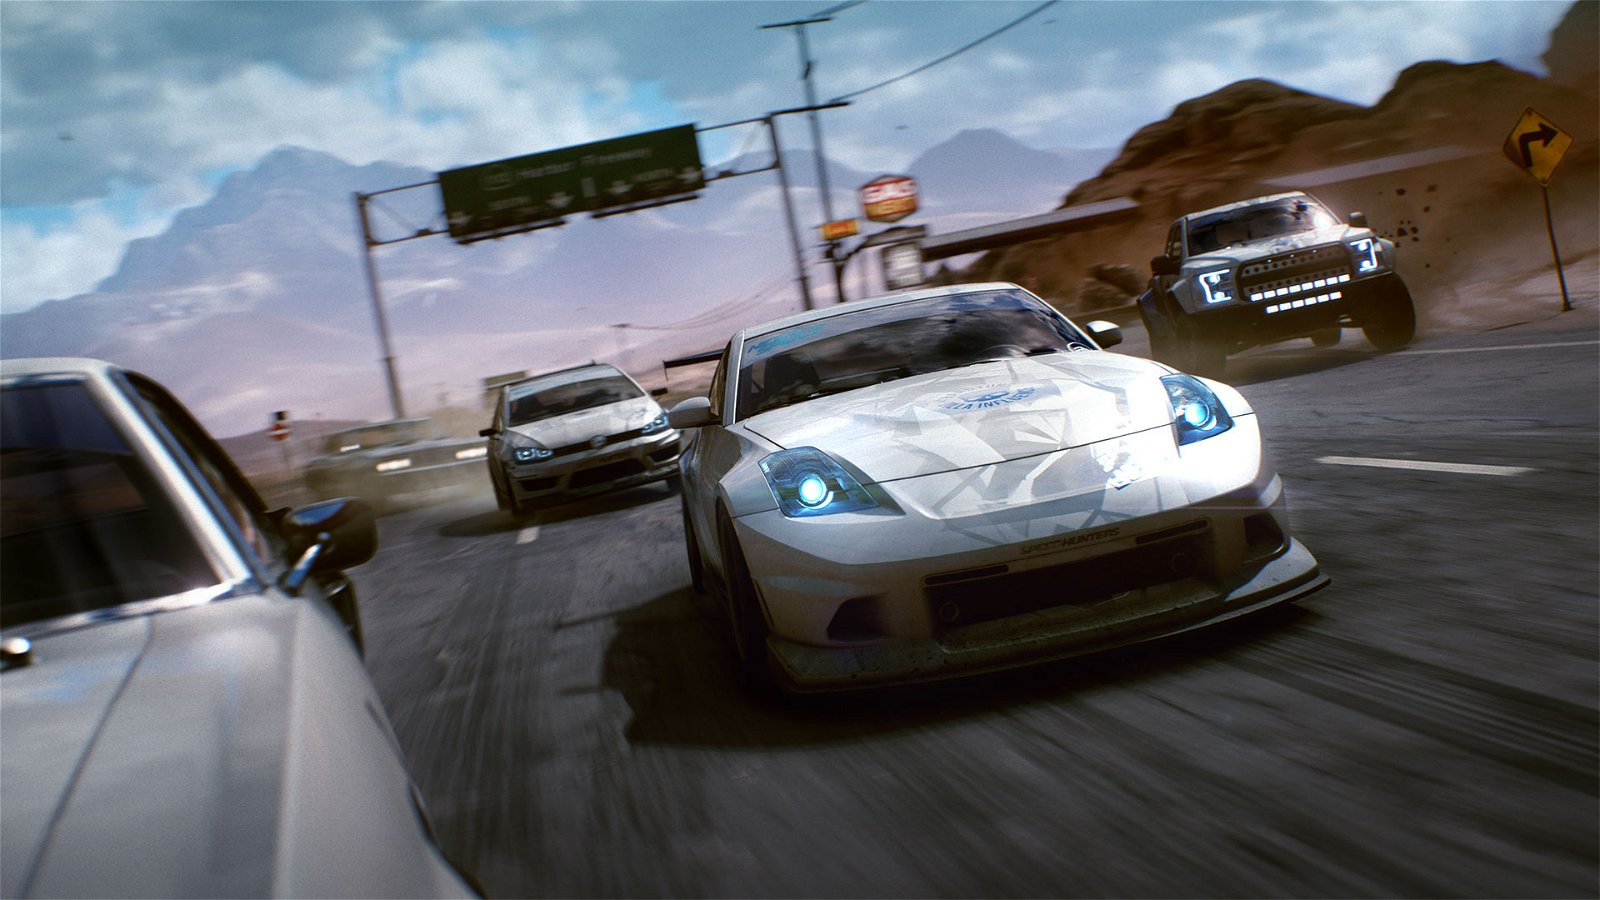 Need for Speed Payback (PlayStation 4) Review - A Great Game That Could Be Hampered by Microtransactions 3